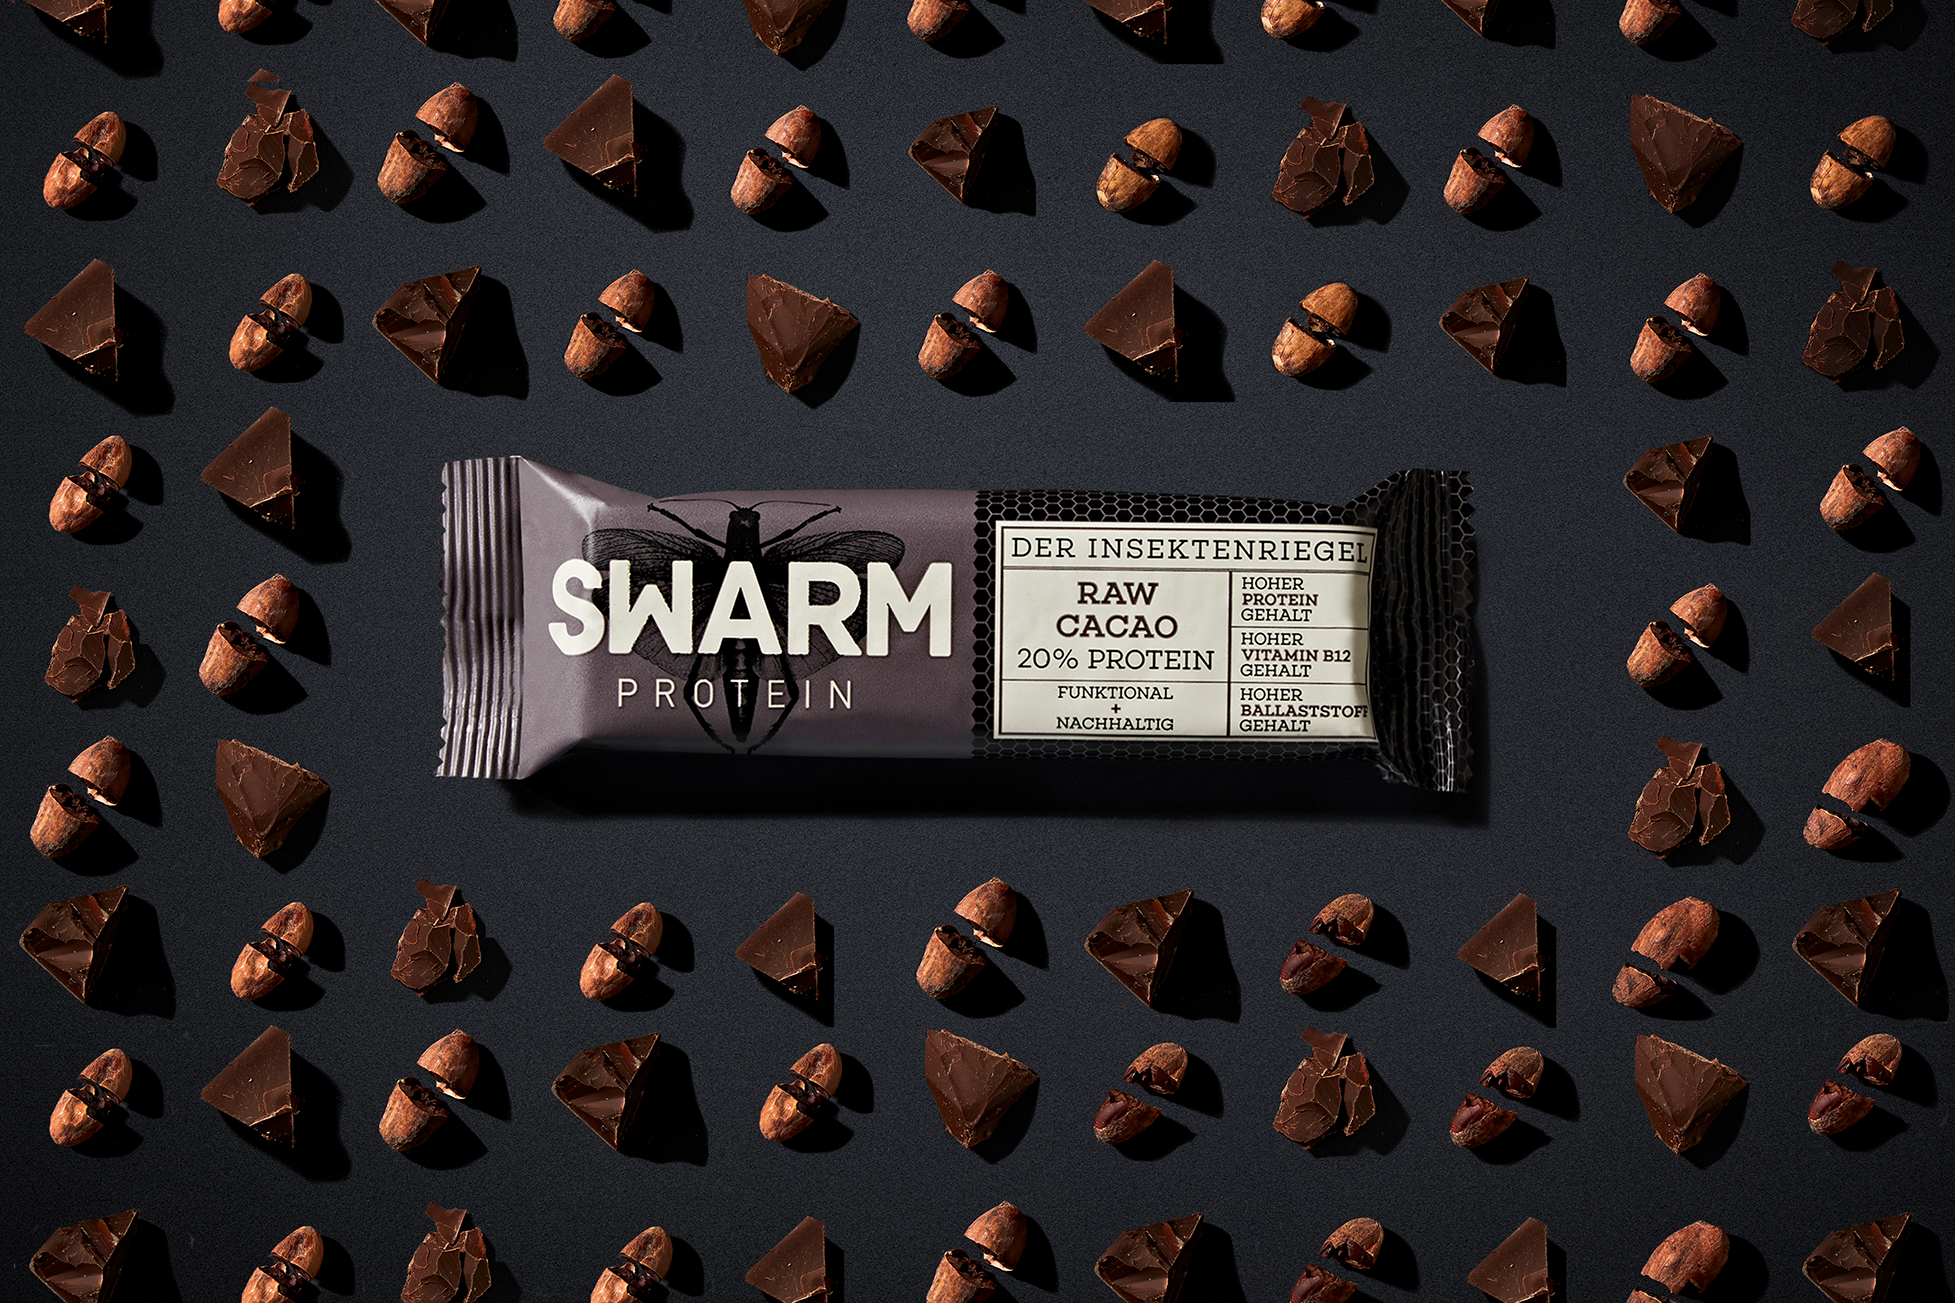 swarm_valentin_muehl_fotografie_stilllife_food_packshot_studio_set_2